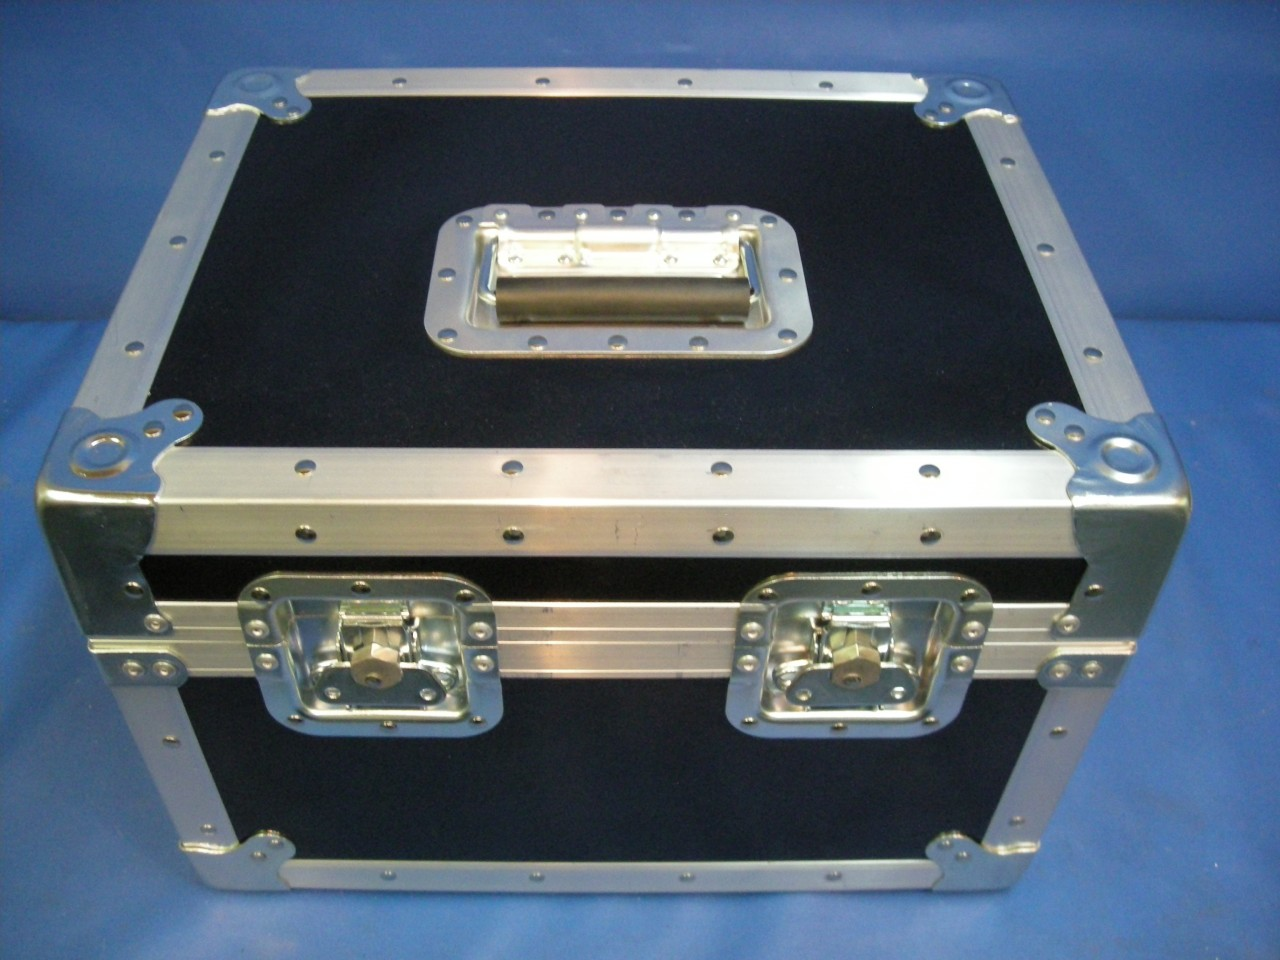 Arri Ultra Prime (4 Position) Custom ATA Shipping Case - Exterior View